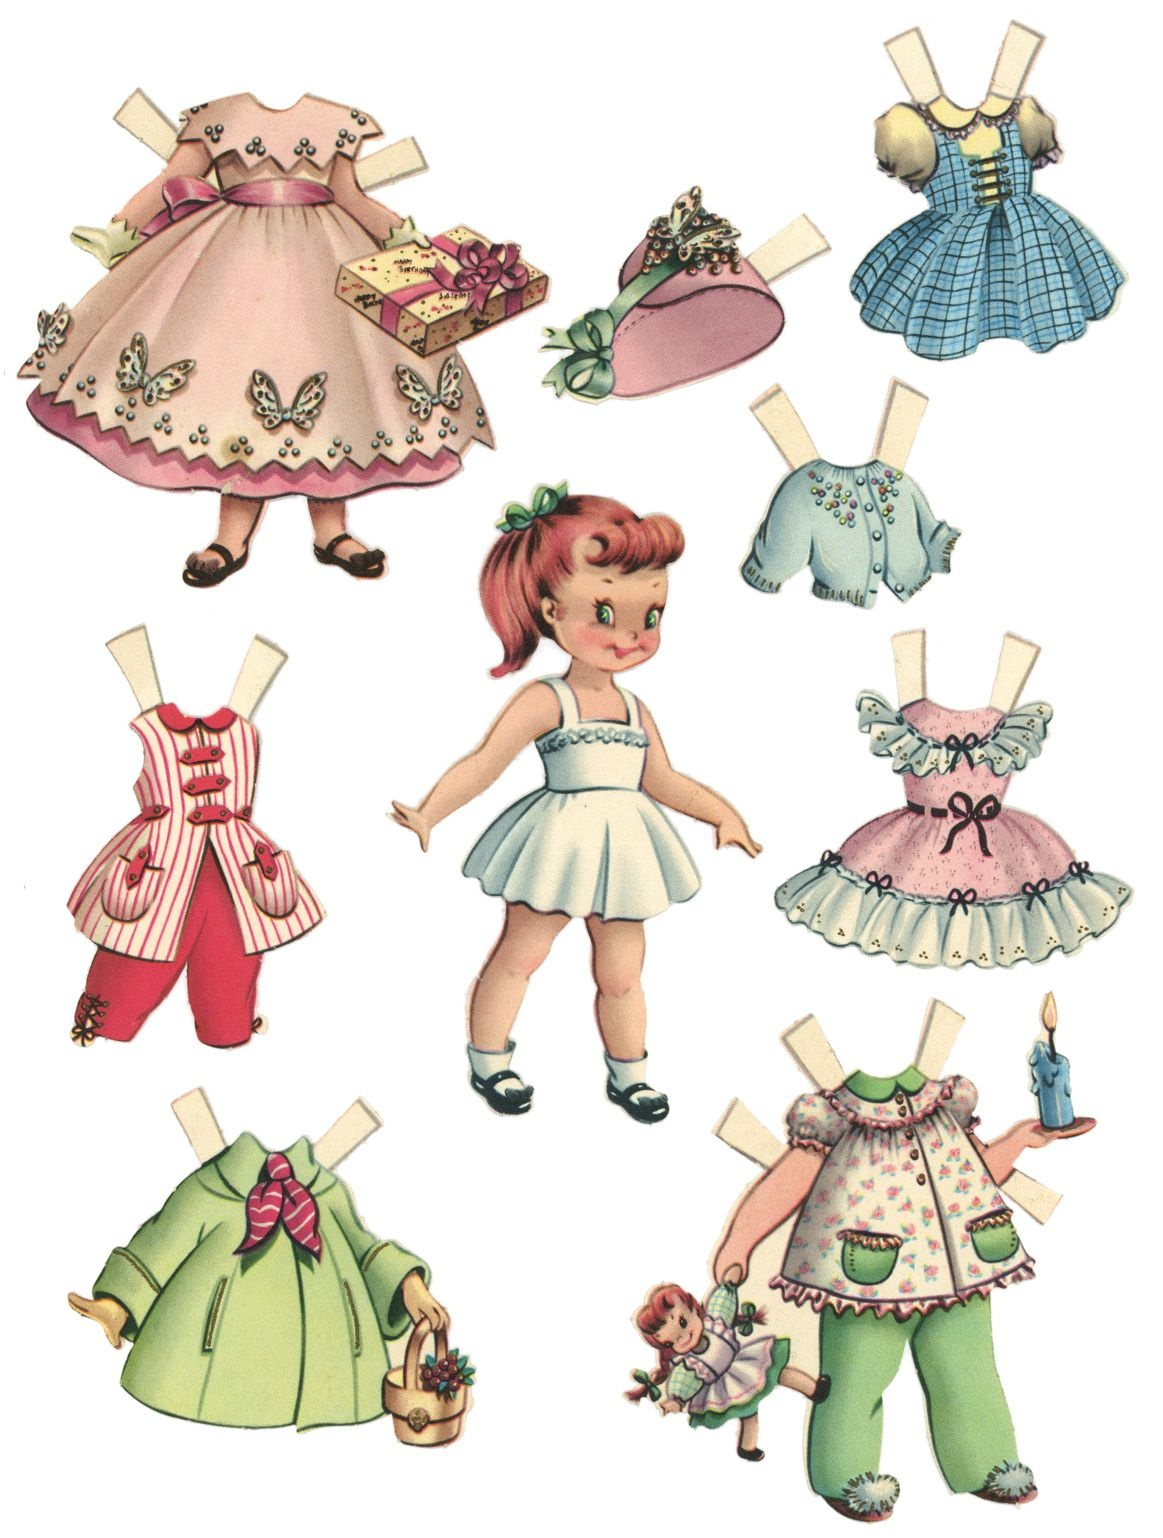 10 Free Printable Paper Dolls | Paper Dolls | Paper Dolls Printable - Free Printable Paper Dolls